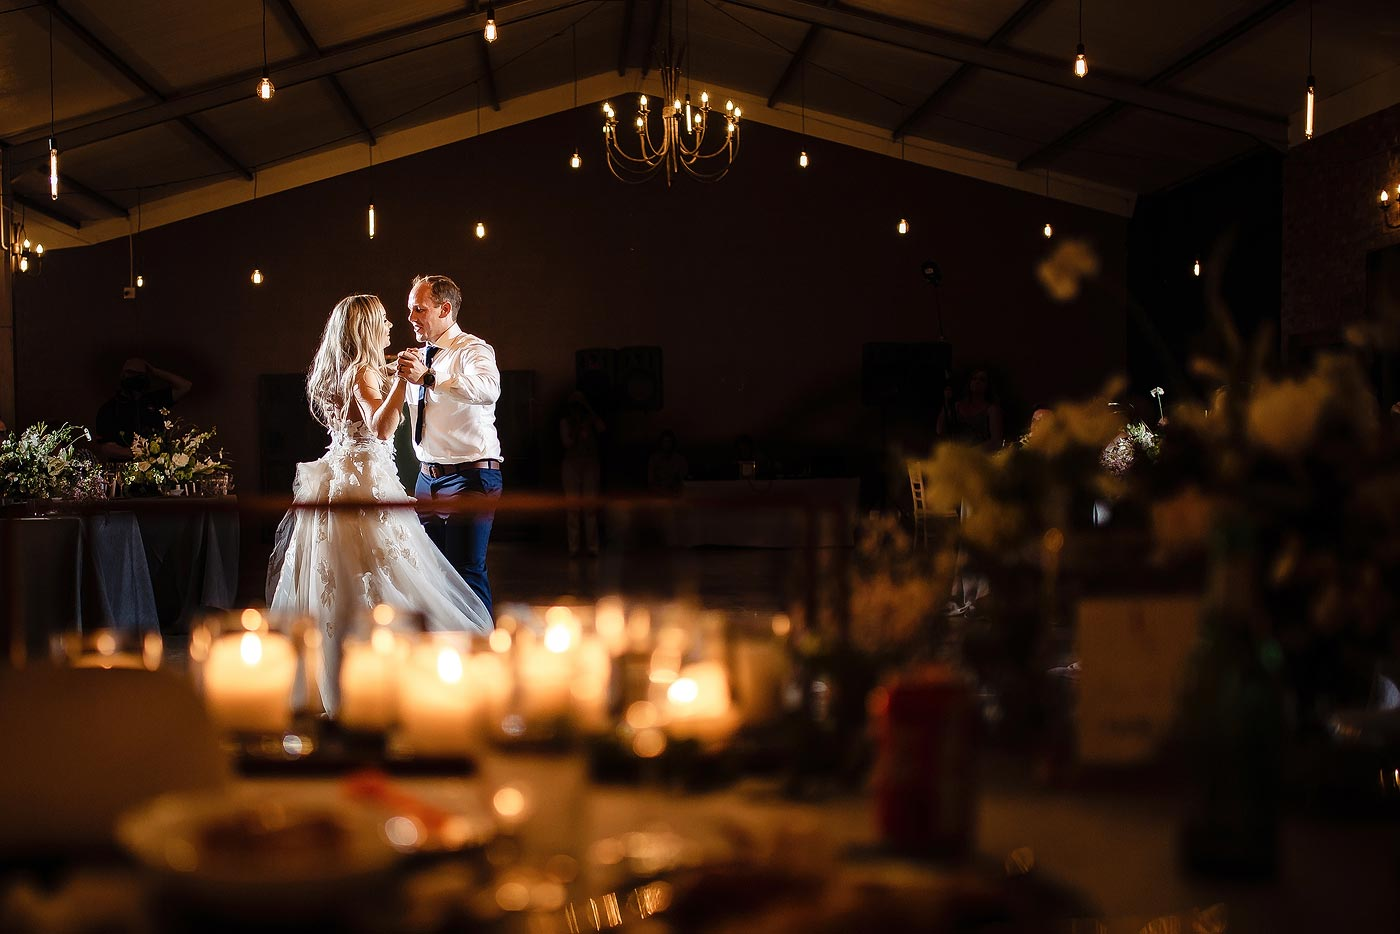 Classic and creative wedding first dance with bridal couple